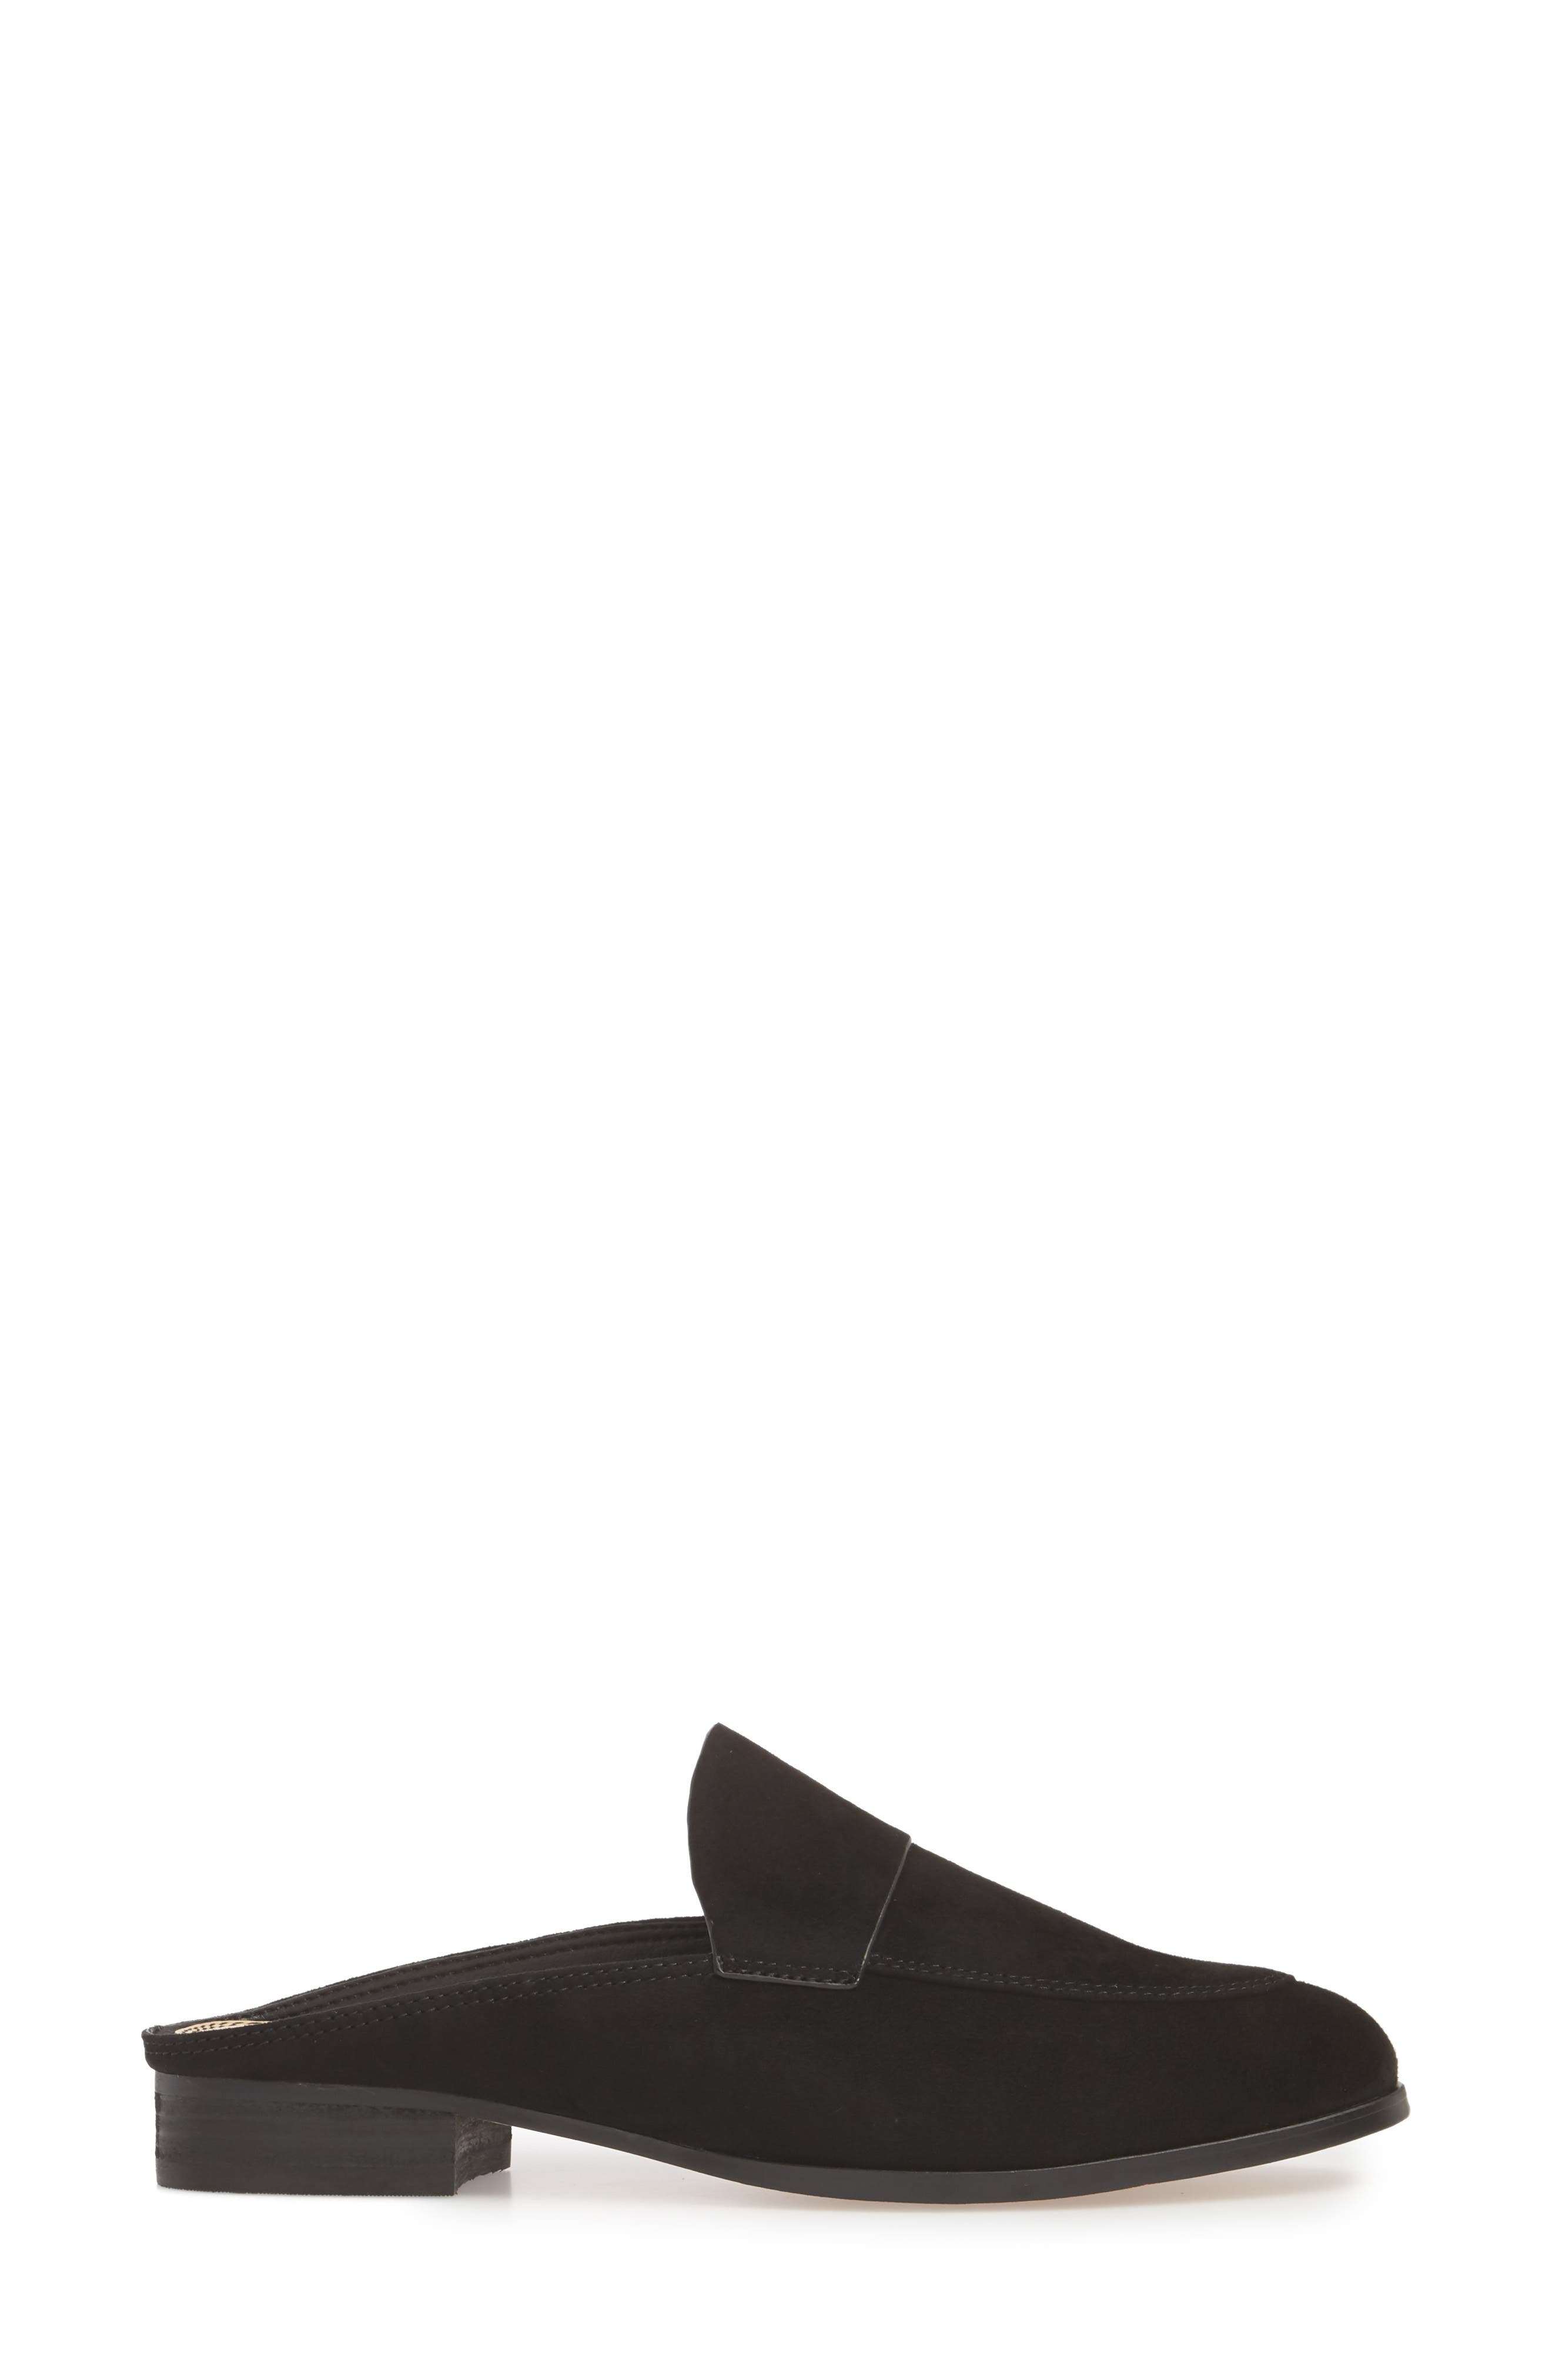 Nima Loafer Mule,                             Alternate thumbnail 3, color,                             013